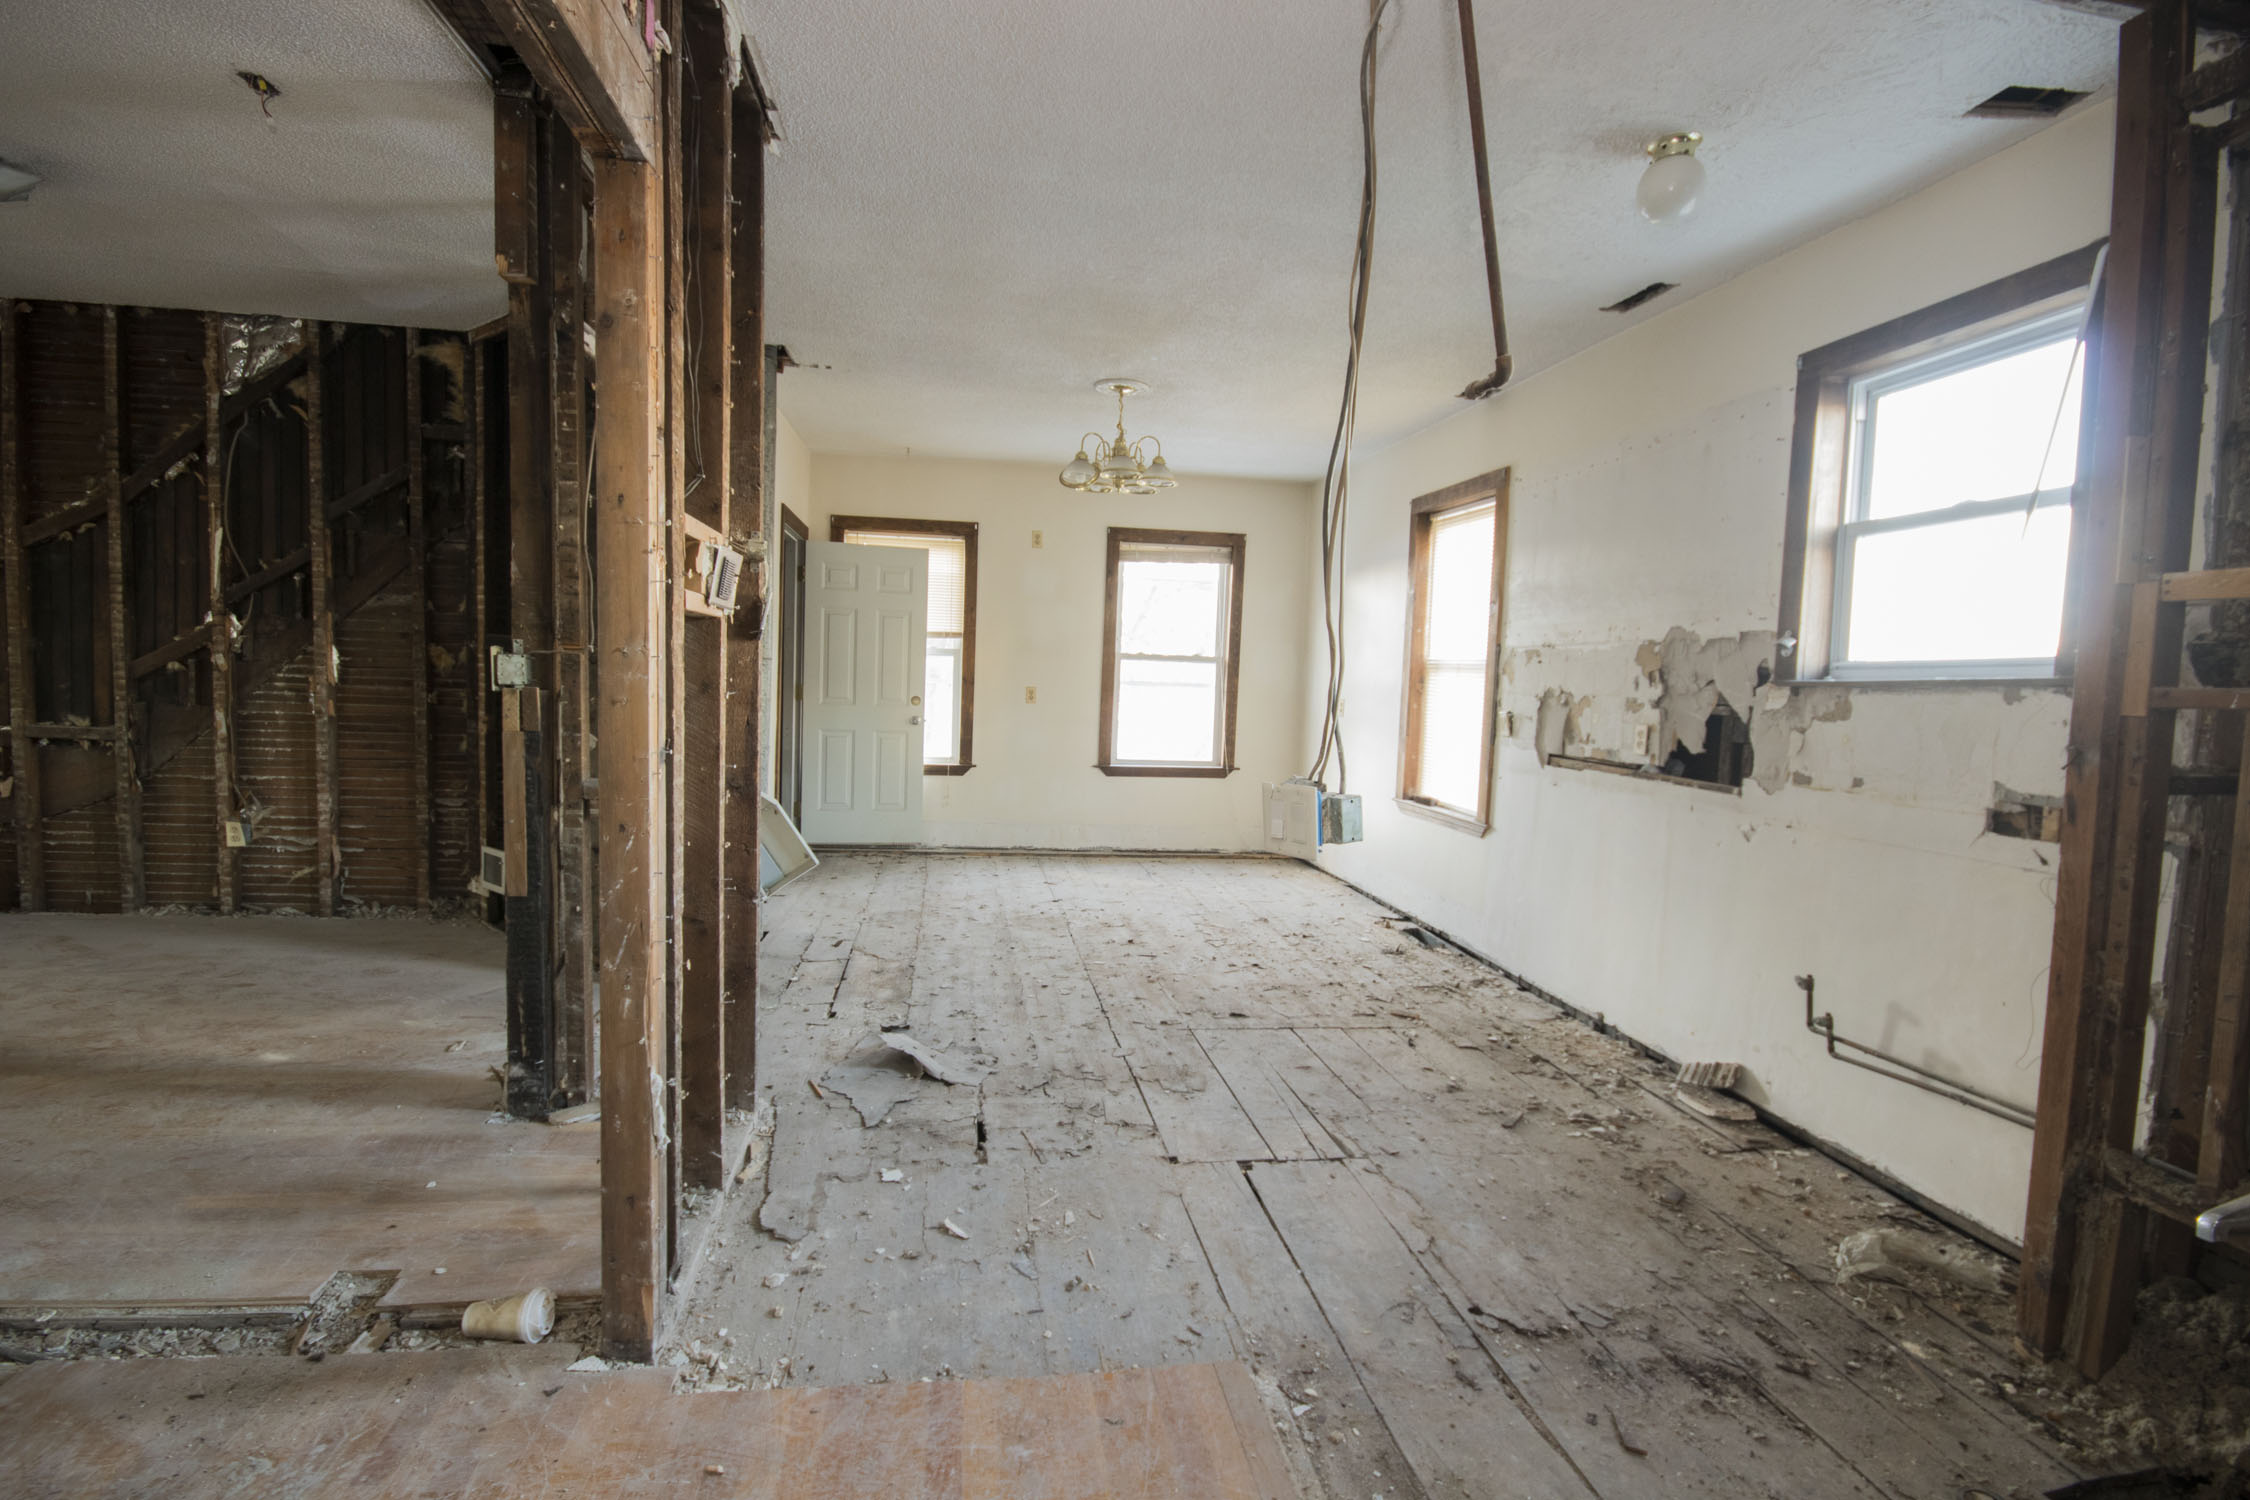 27 Darling Street Mission Hill Boston General Contractor_27